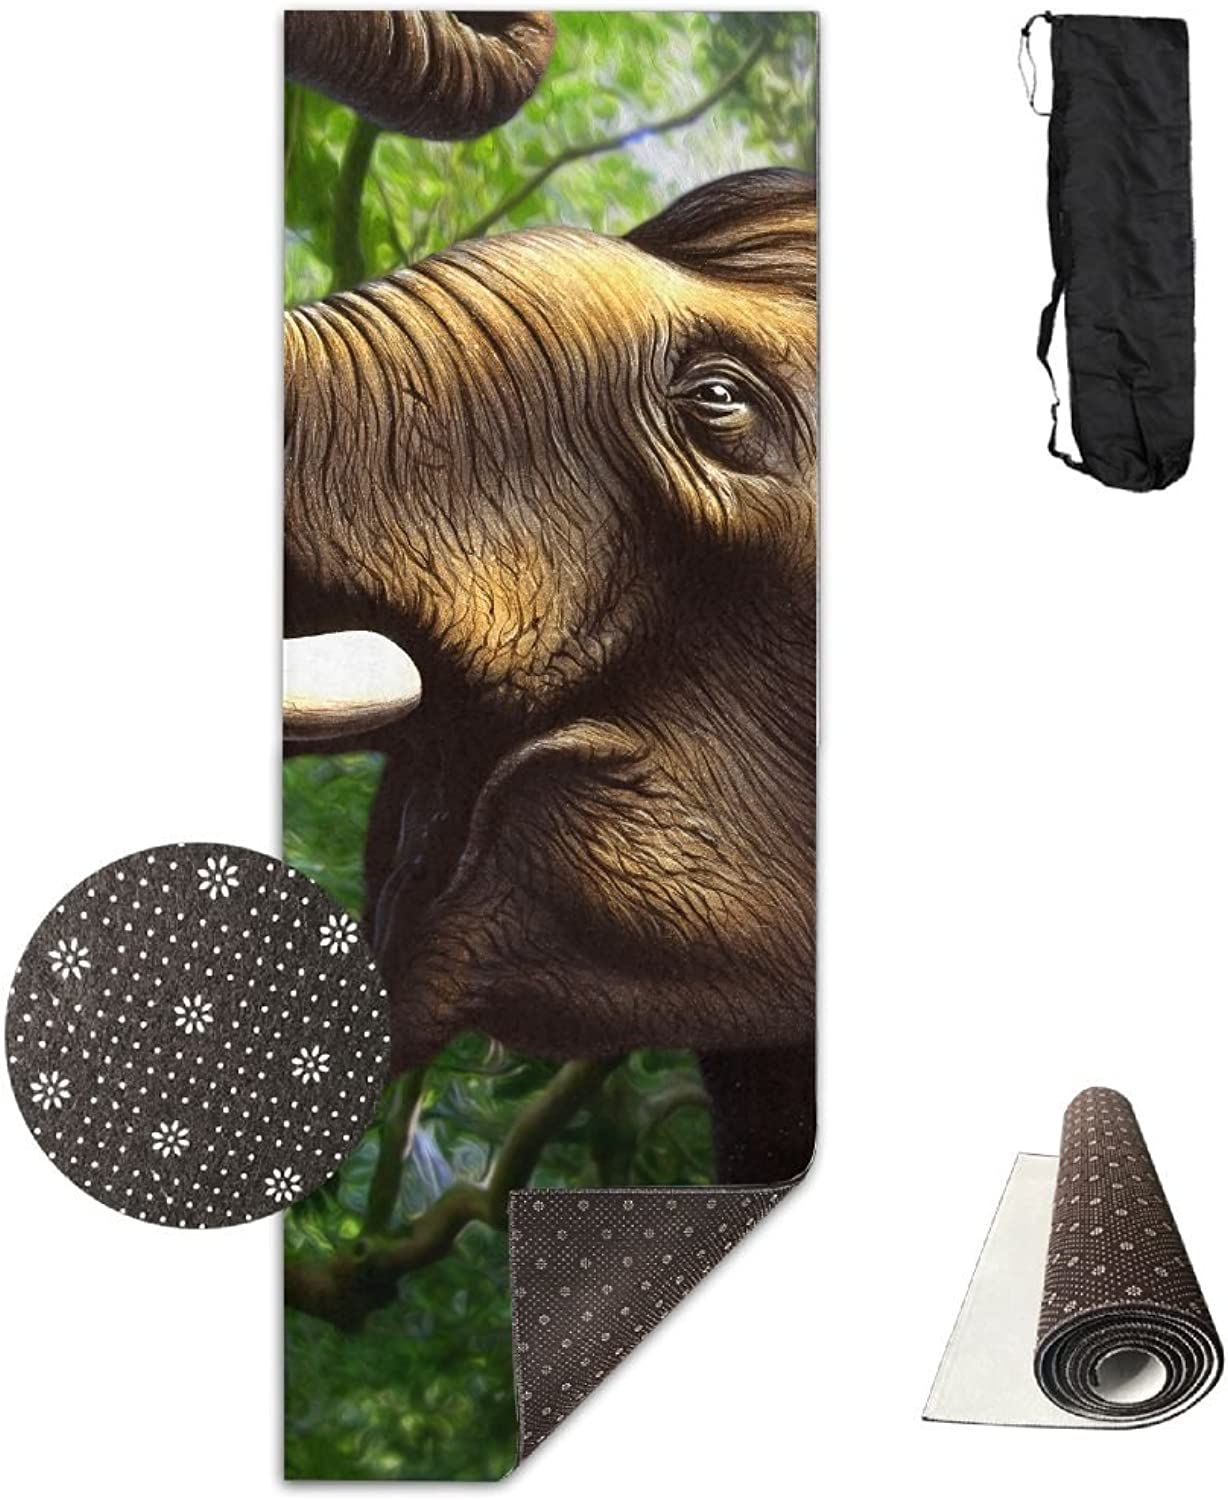 Yoga Mat Non Slip 24  X 71  Exercise Mats Cute Elephant Premium Fitness Pilates Carrying Strap